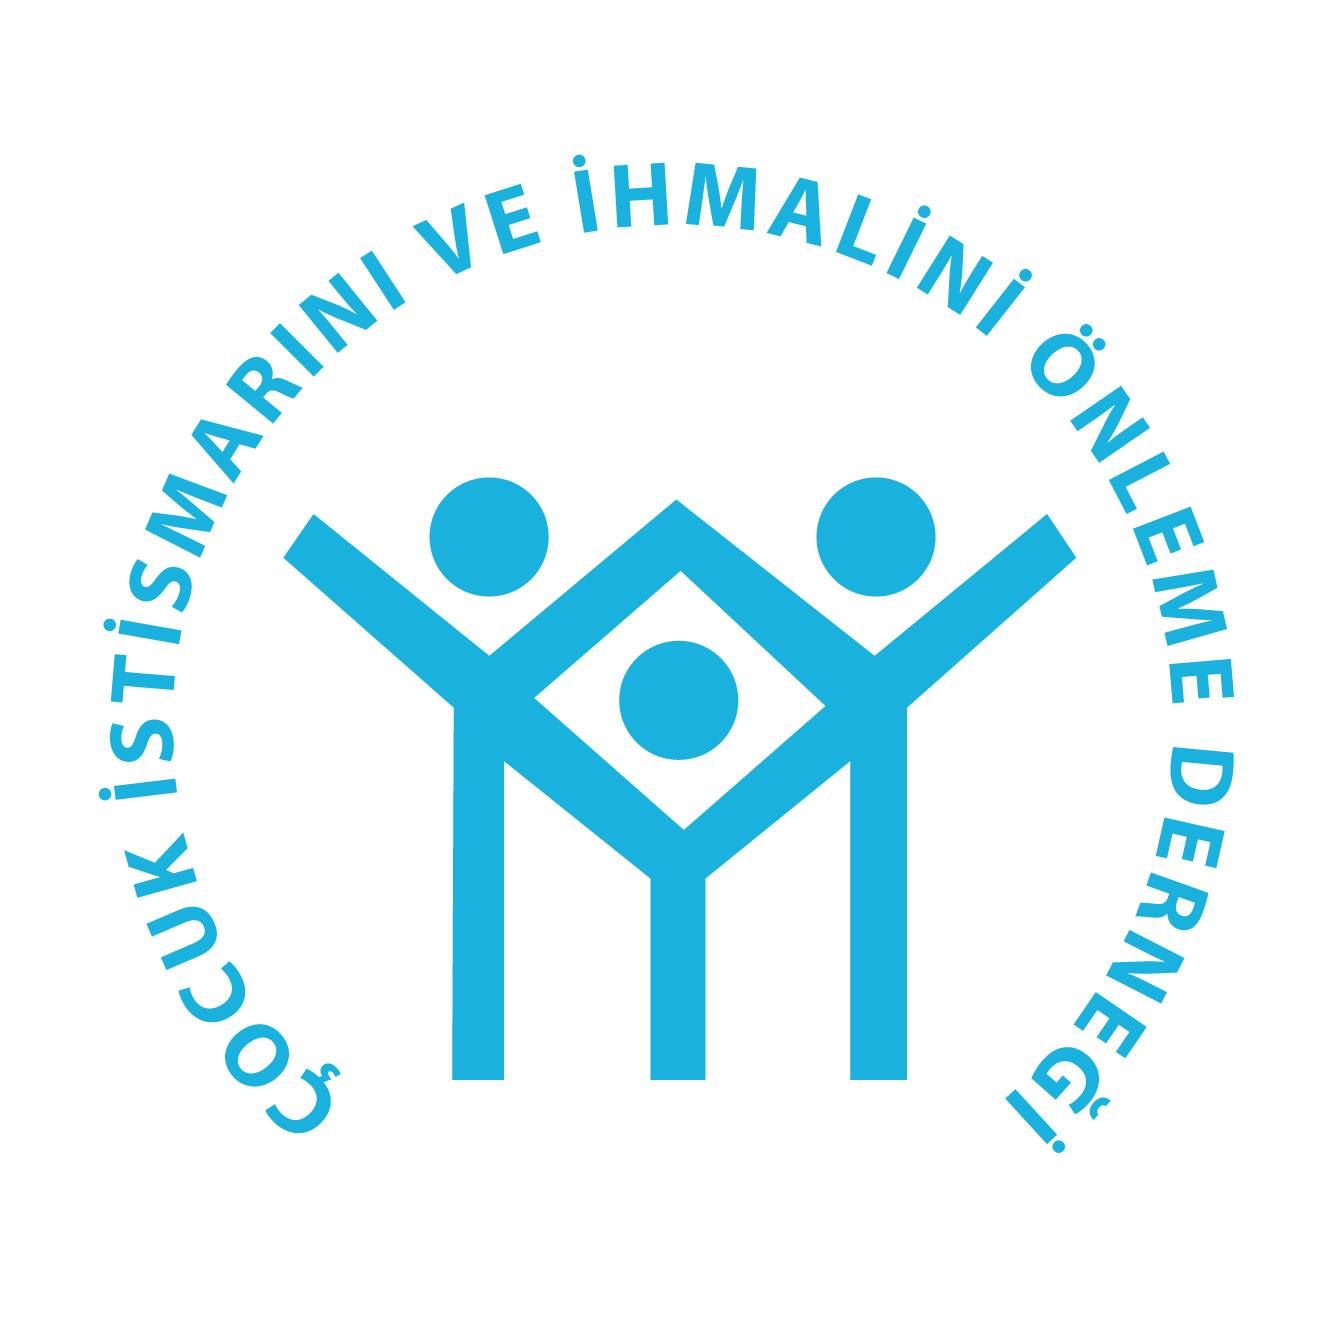 Çocuk İstismarını ve İhmalini Önleme Derneği – Child Abuse and Neglect Prevention Association